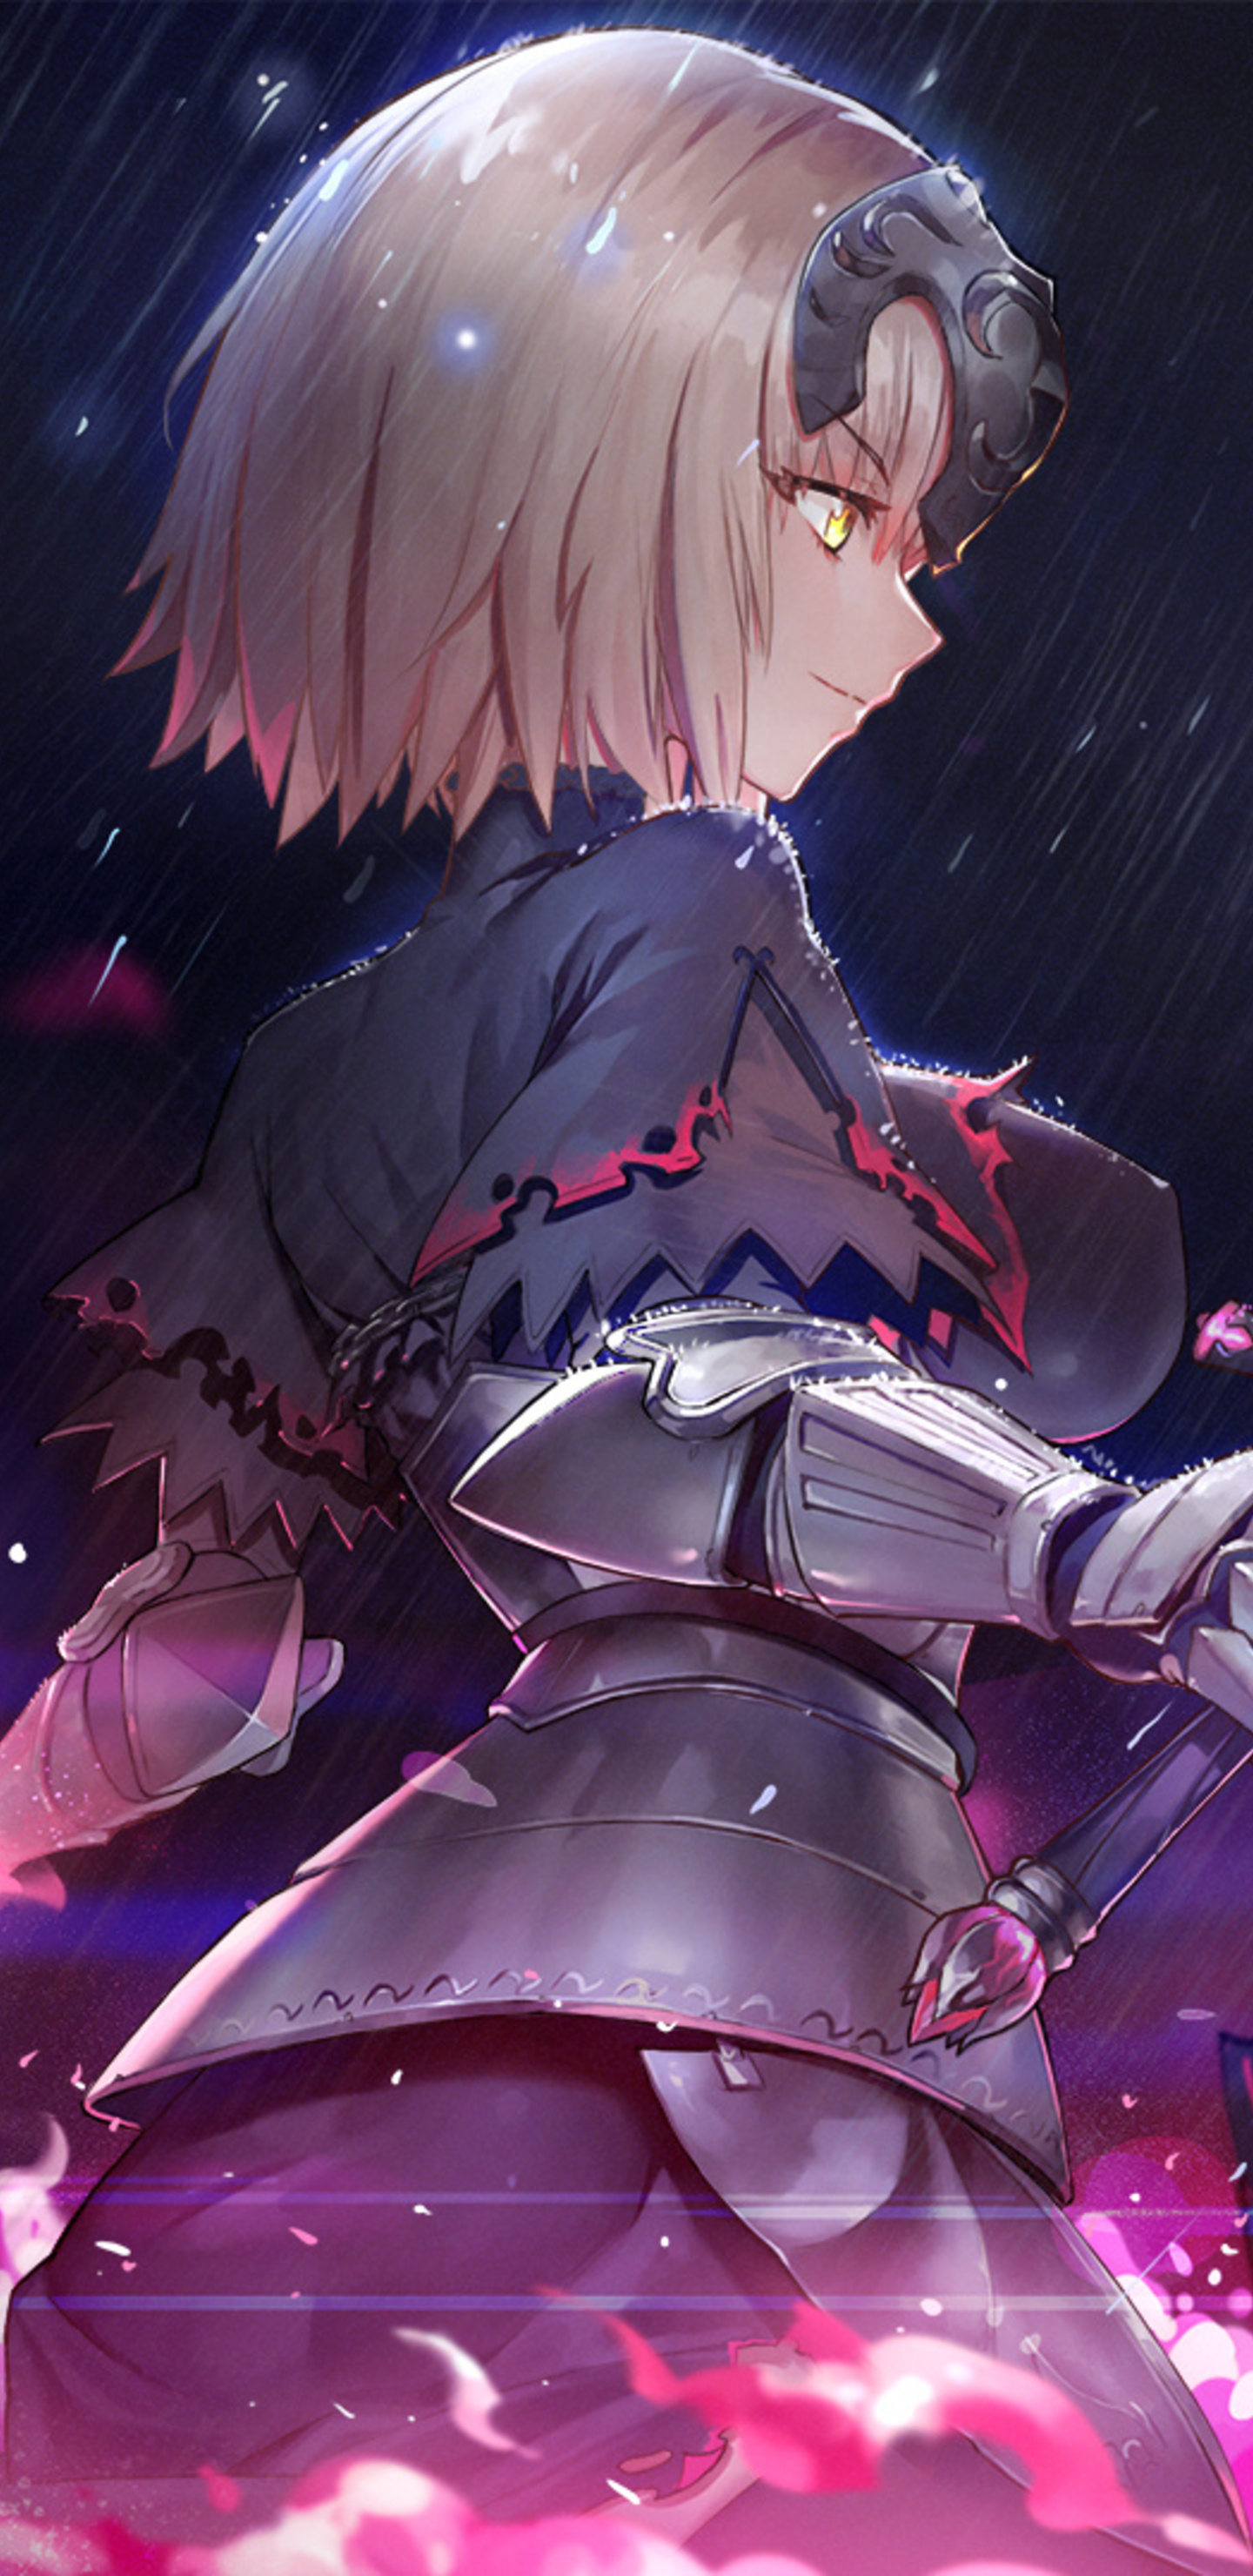 1440x2960 Fate Grand Order Anime Samsung Galaxy Note 9 8 S9 S8 S8